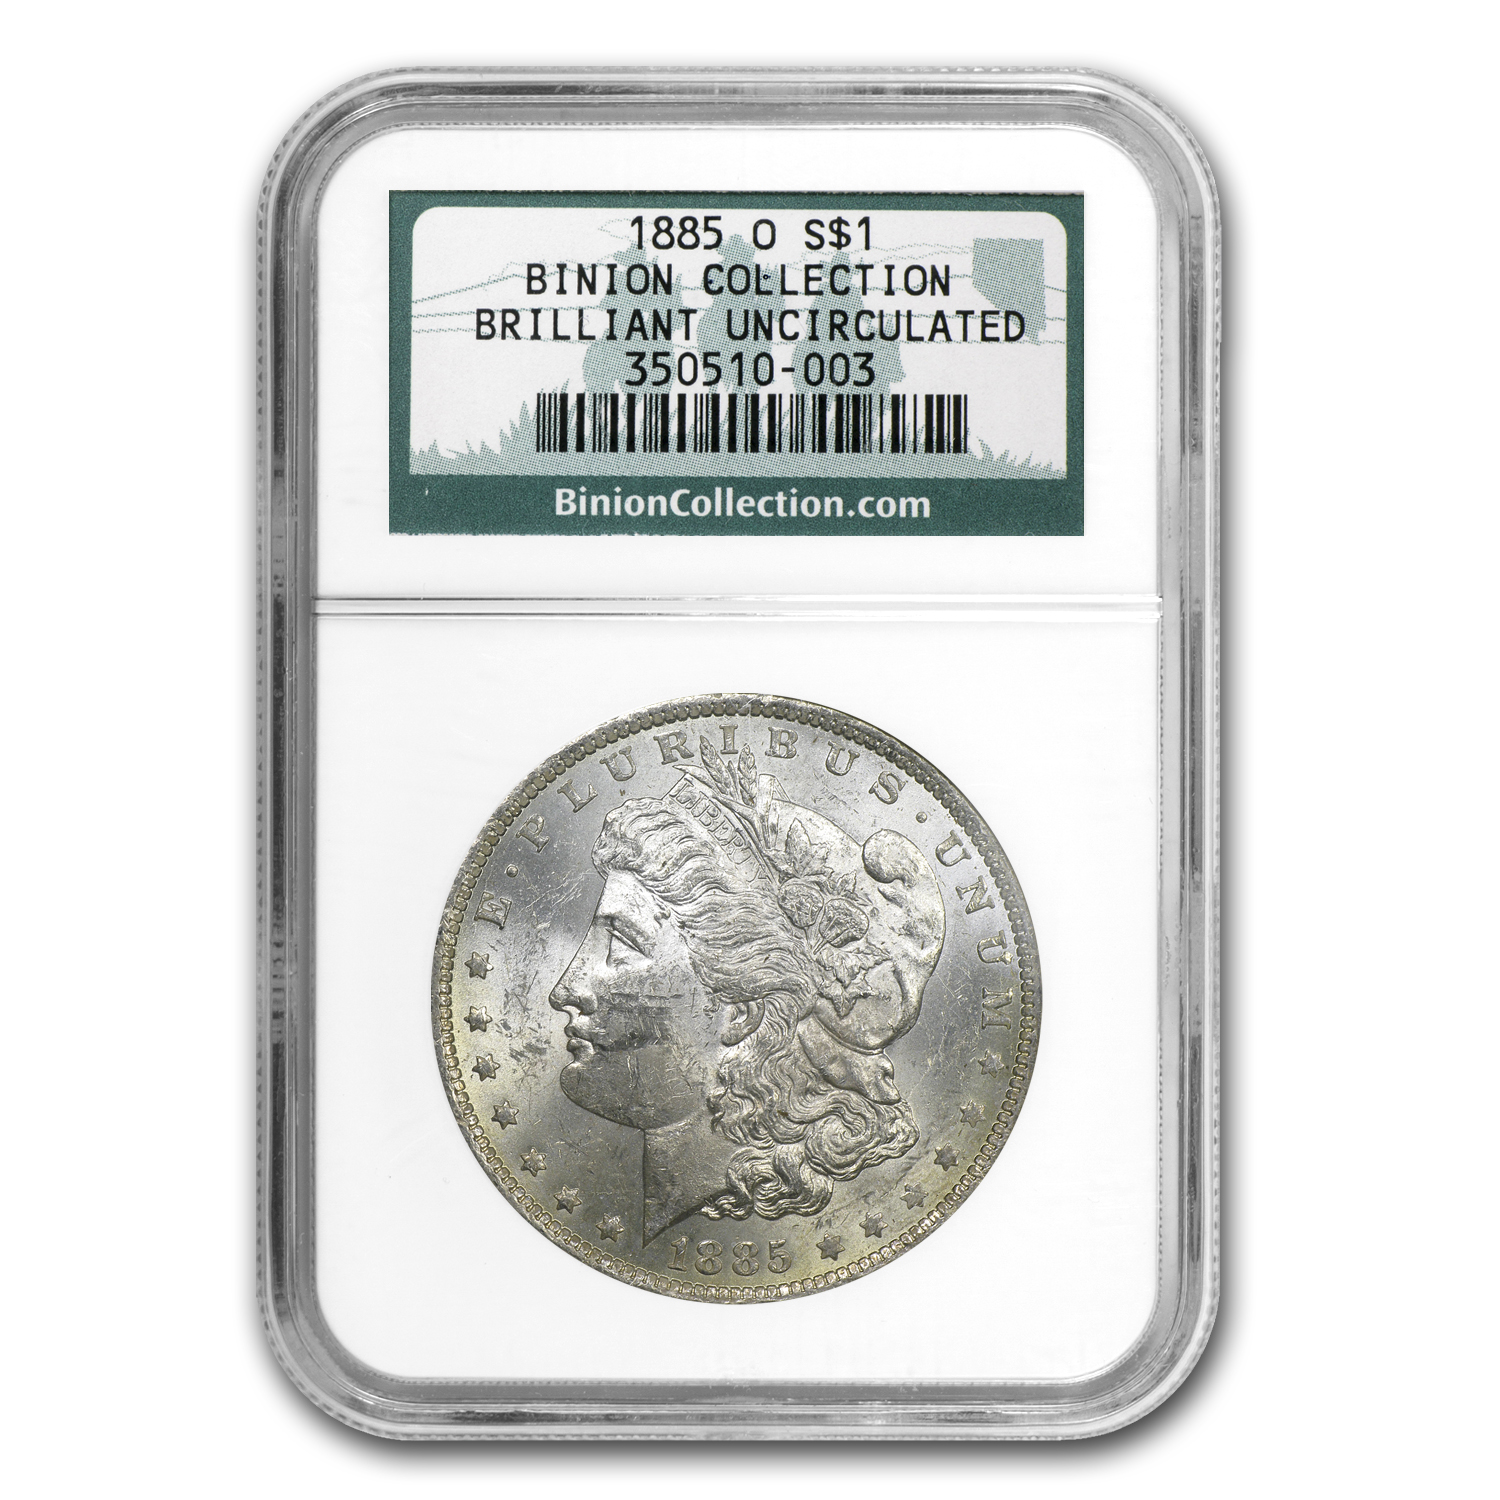 1885-O Morgan Dollar NGC (Binion Collection)